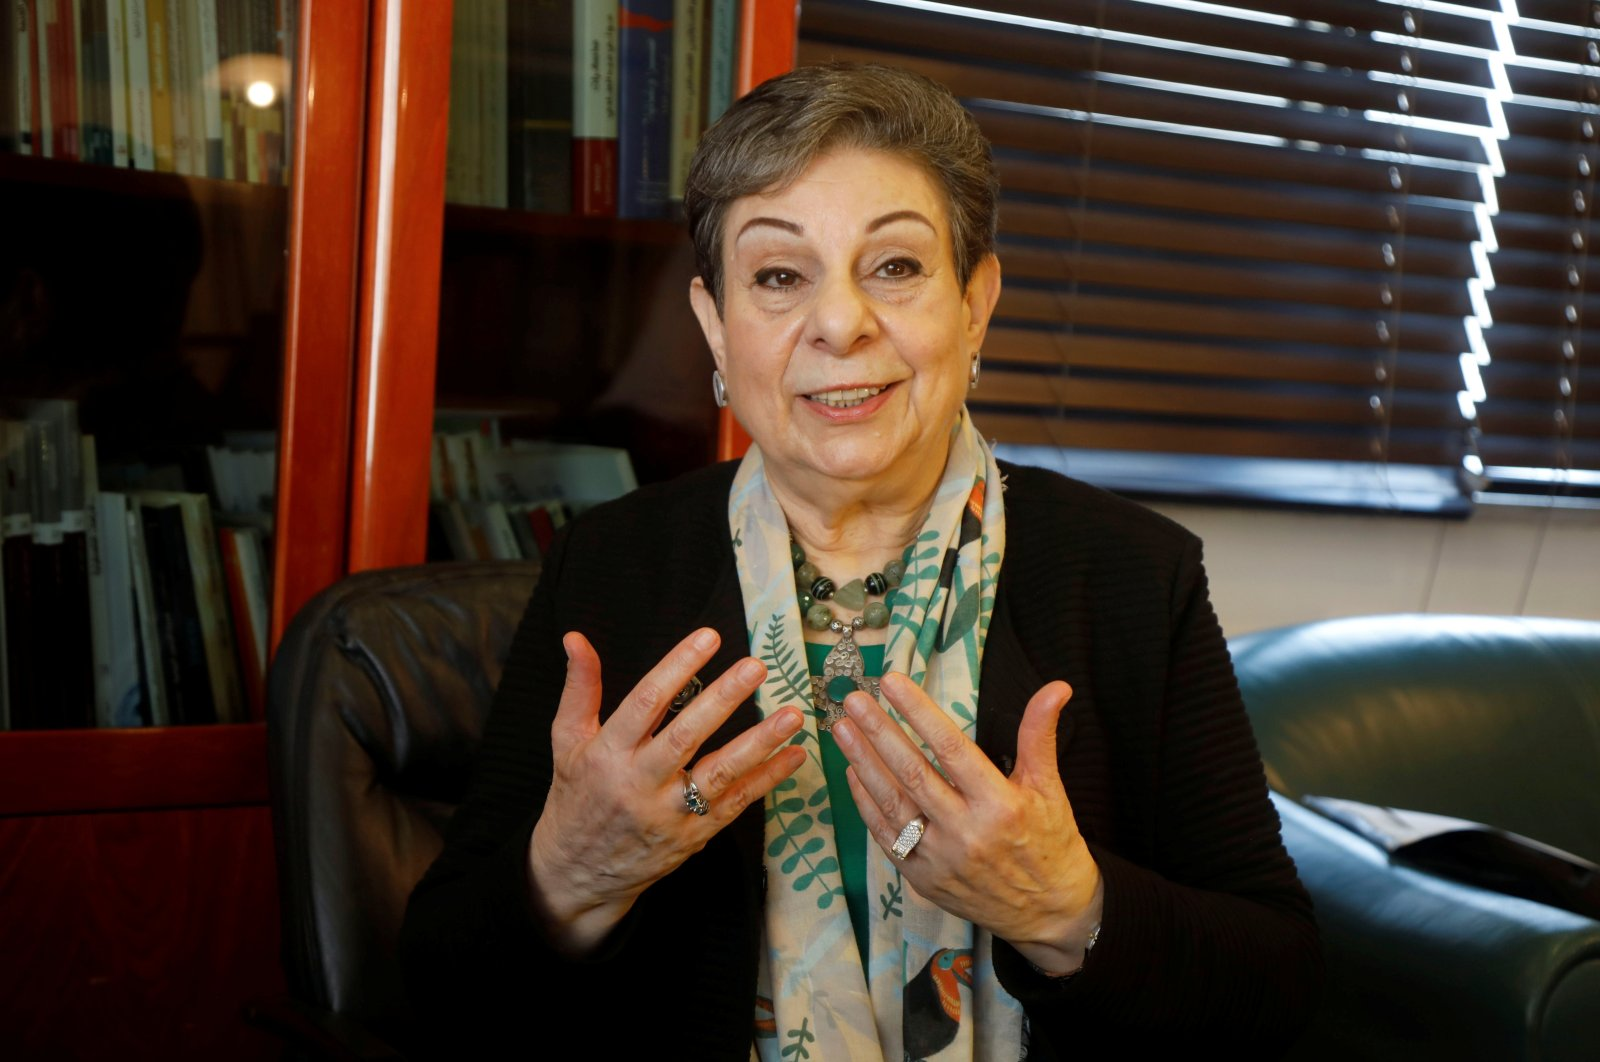 Palestinian politician Hanan Ashrawi gestures during an interview with Reuters, in Ramallah, Israeli-occupied West Bank, Palestine, Feb. 3, 2021. (Reuters Photo)